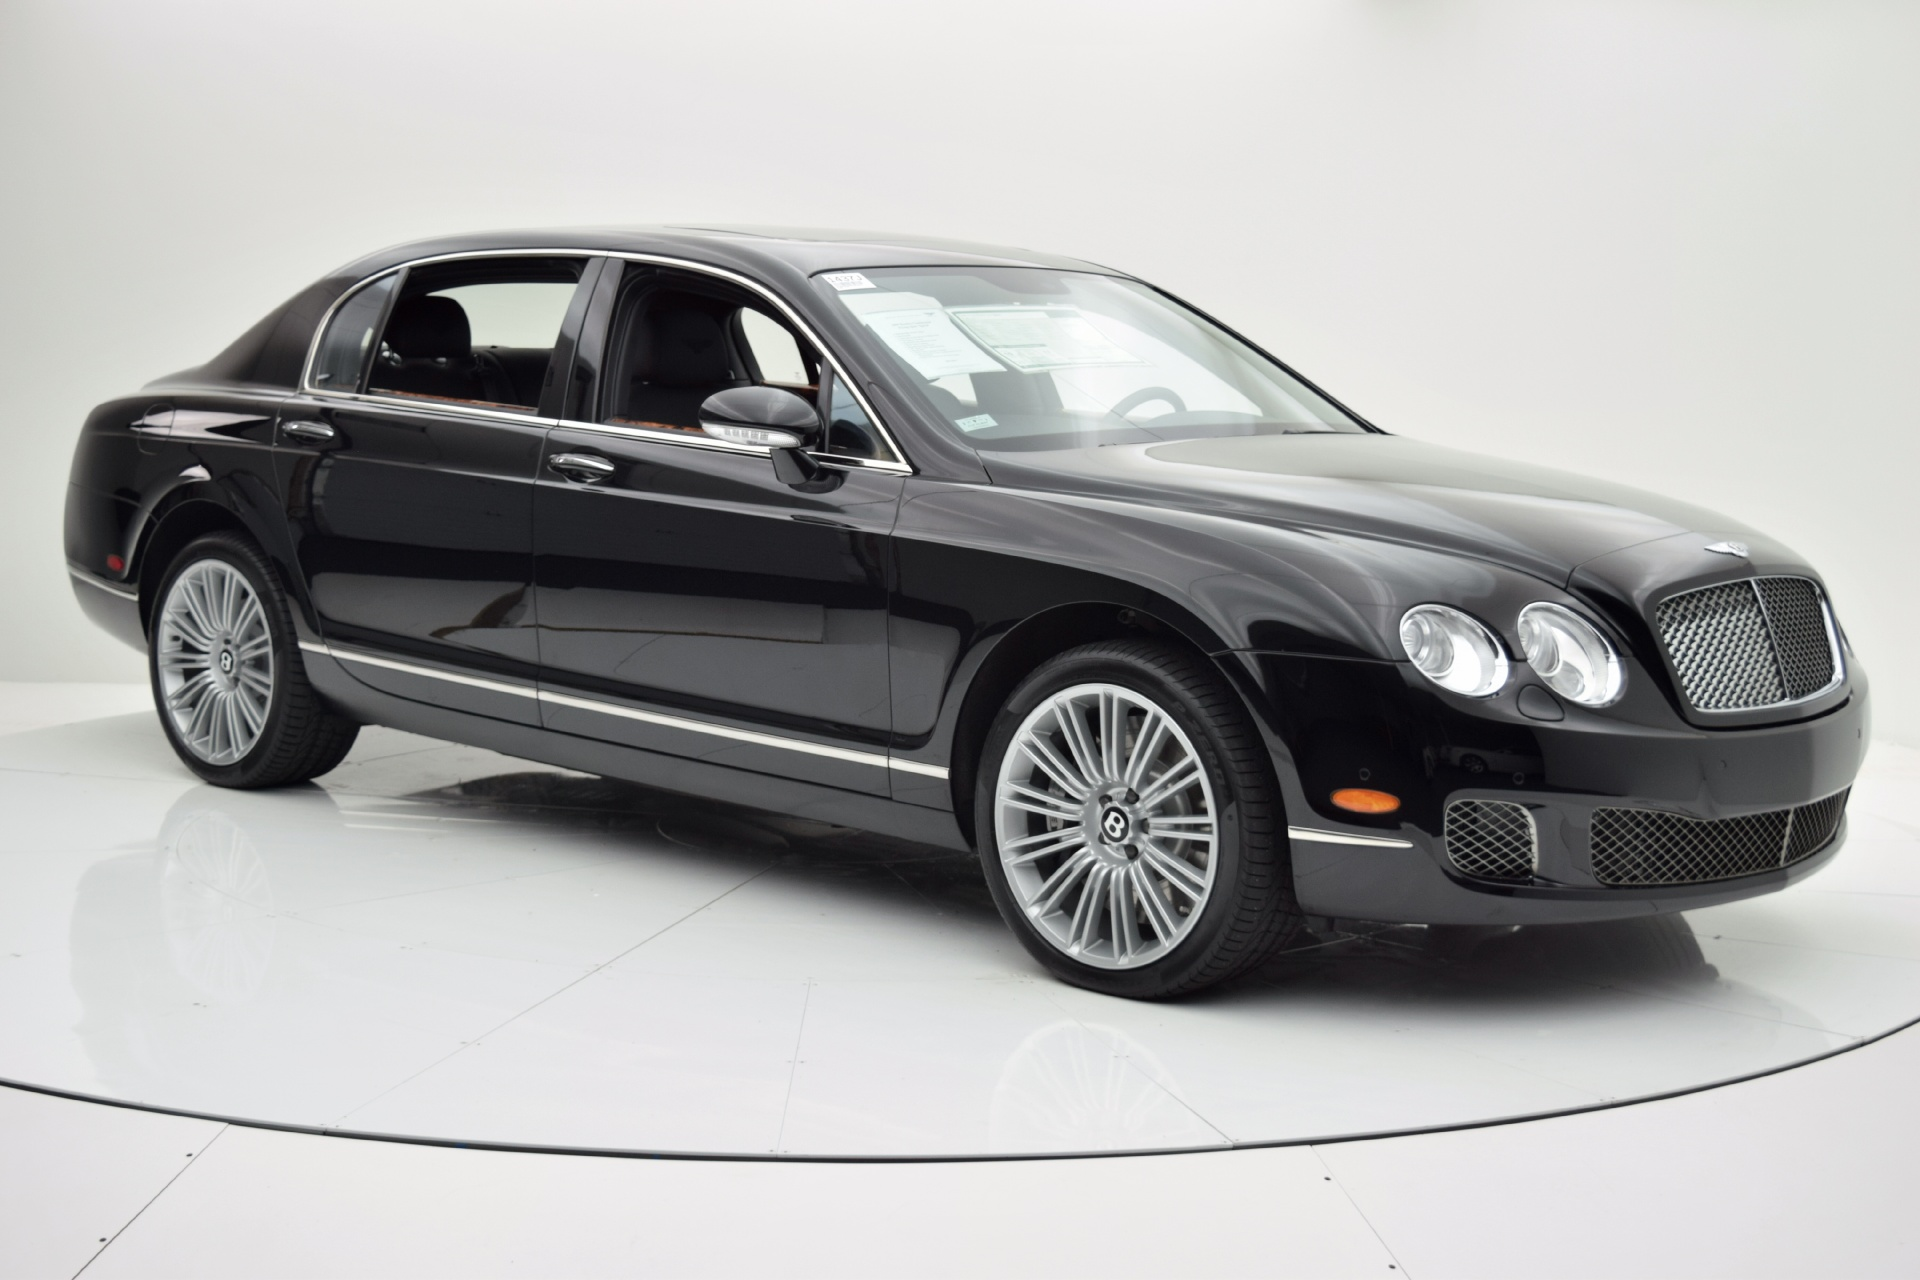 2009 Bentley Continental Flying Spur Speed photo - 2